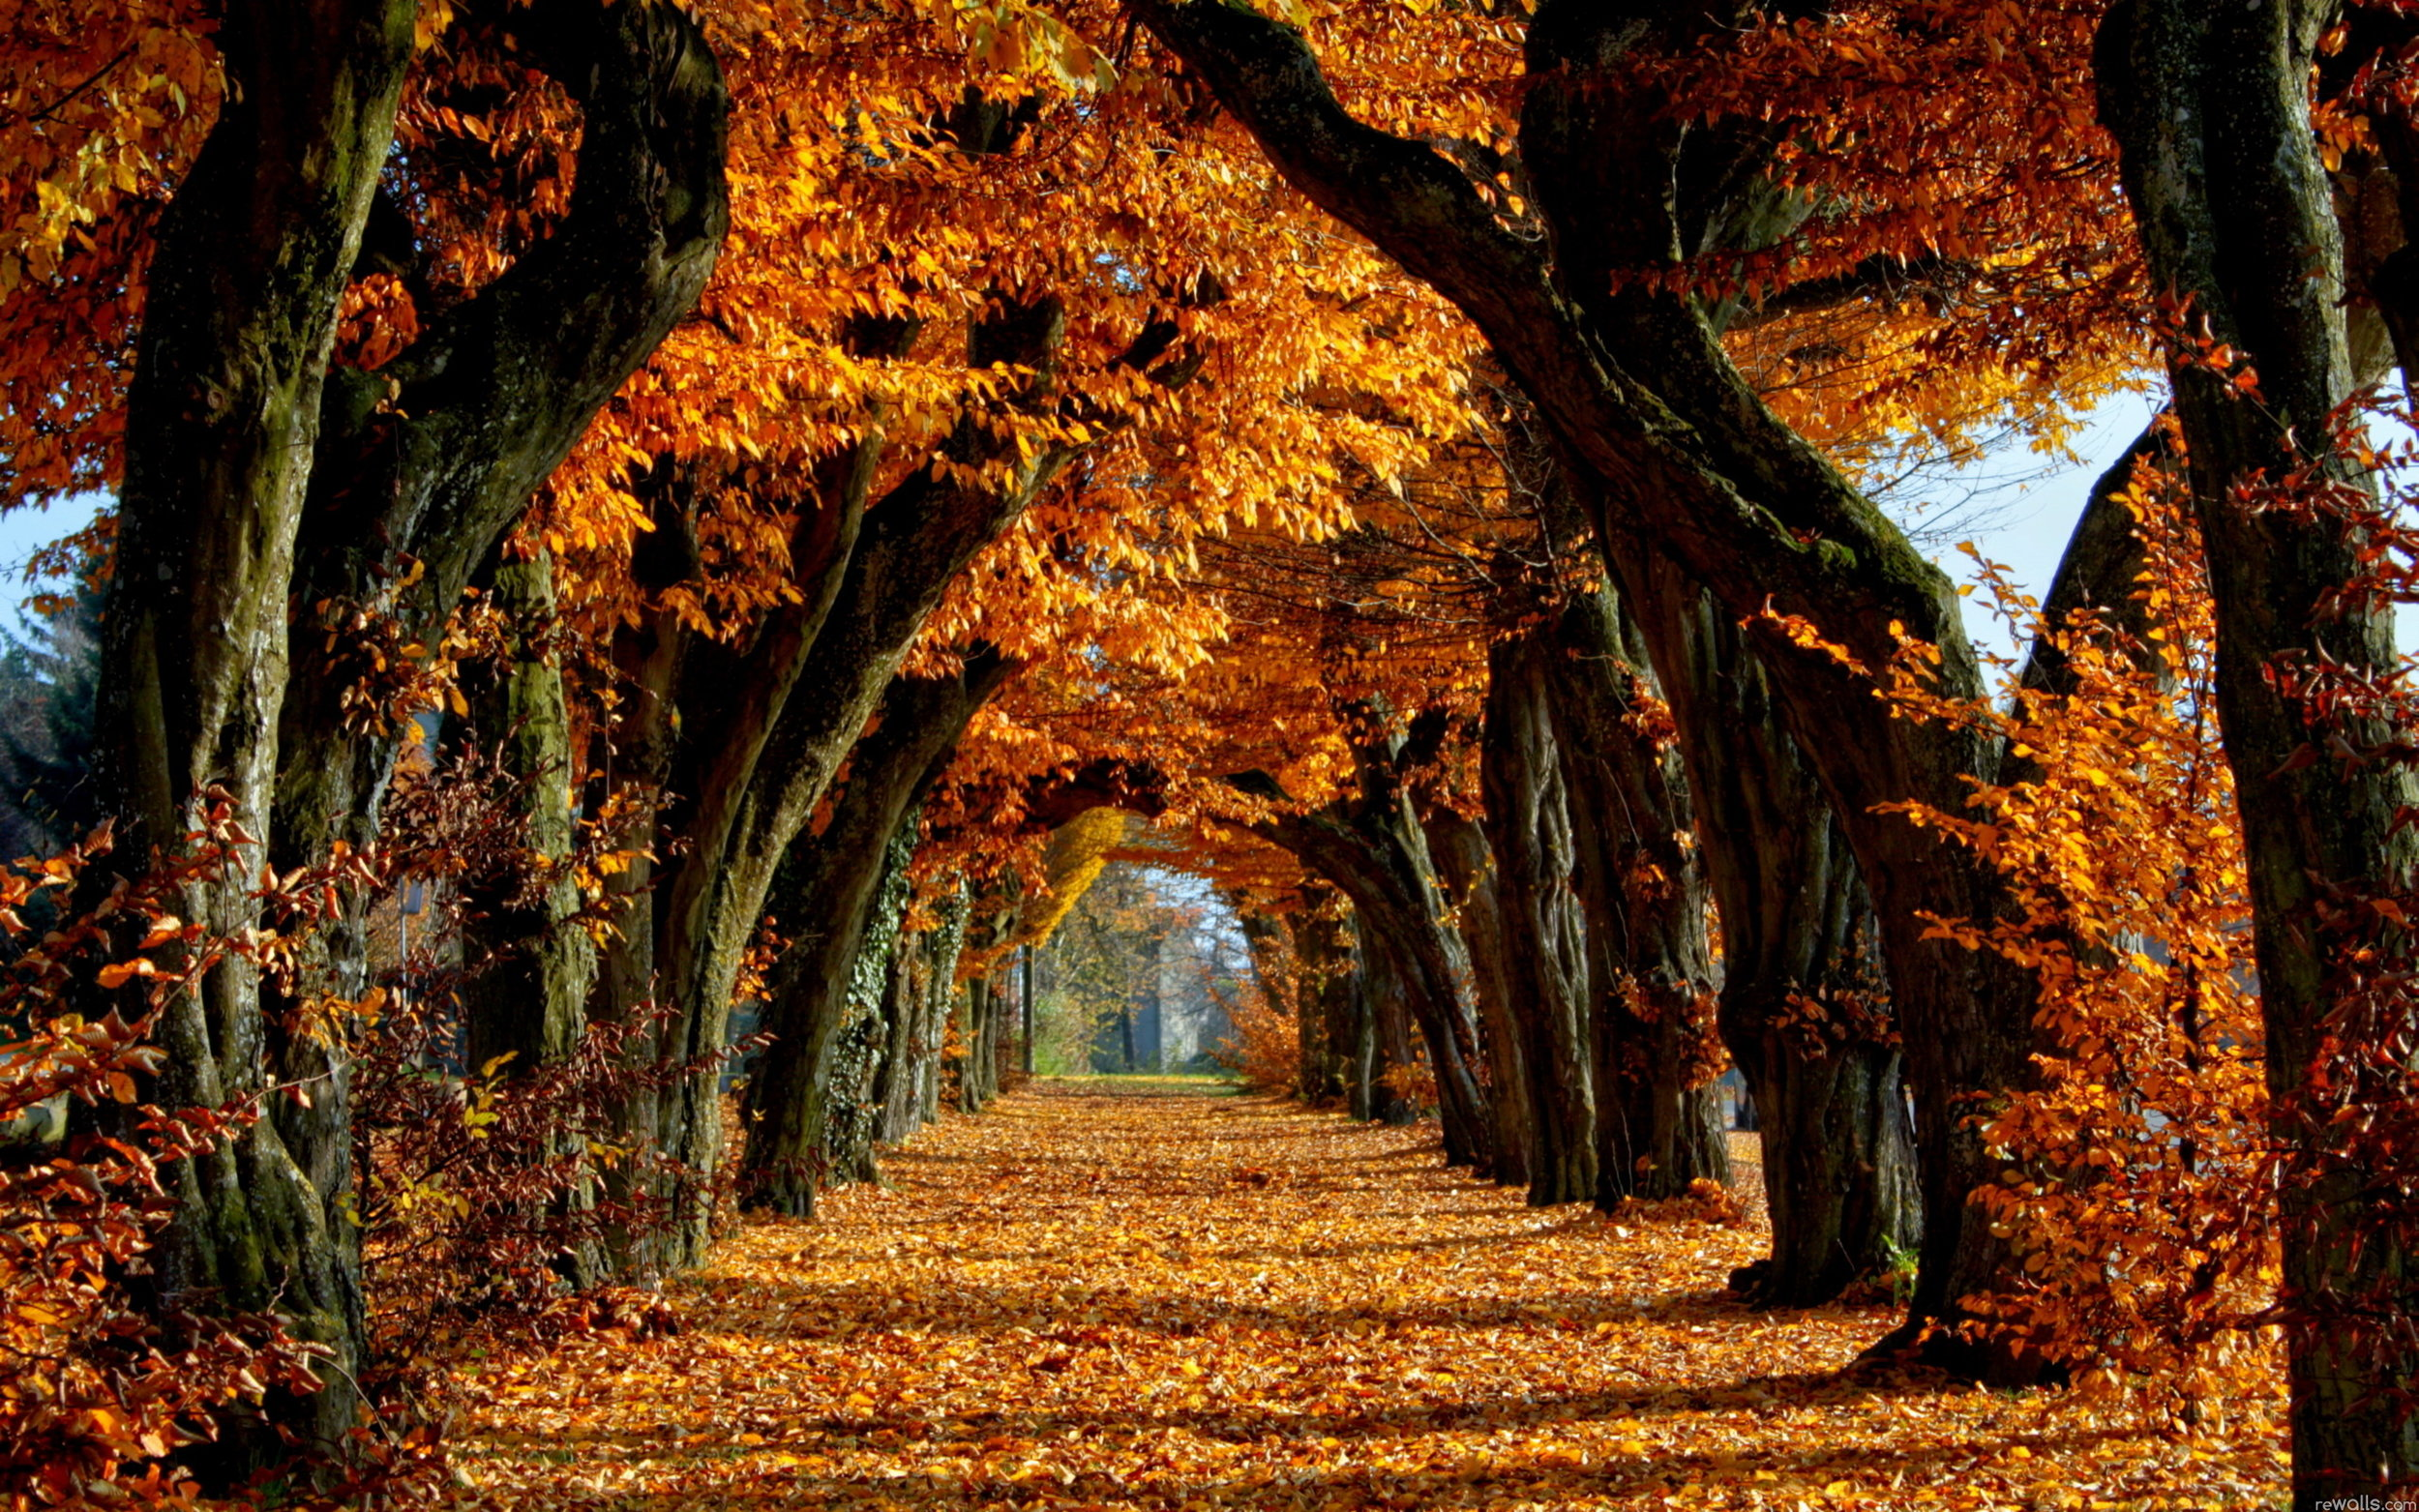 New-Fall-Autumn-Trees-Leaves-Nature-Wallpaper.jpg